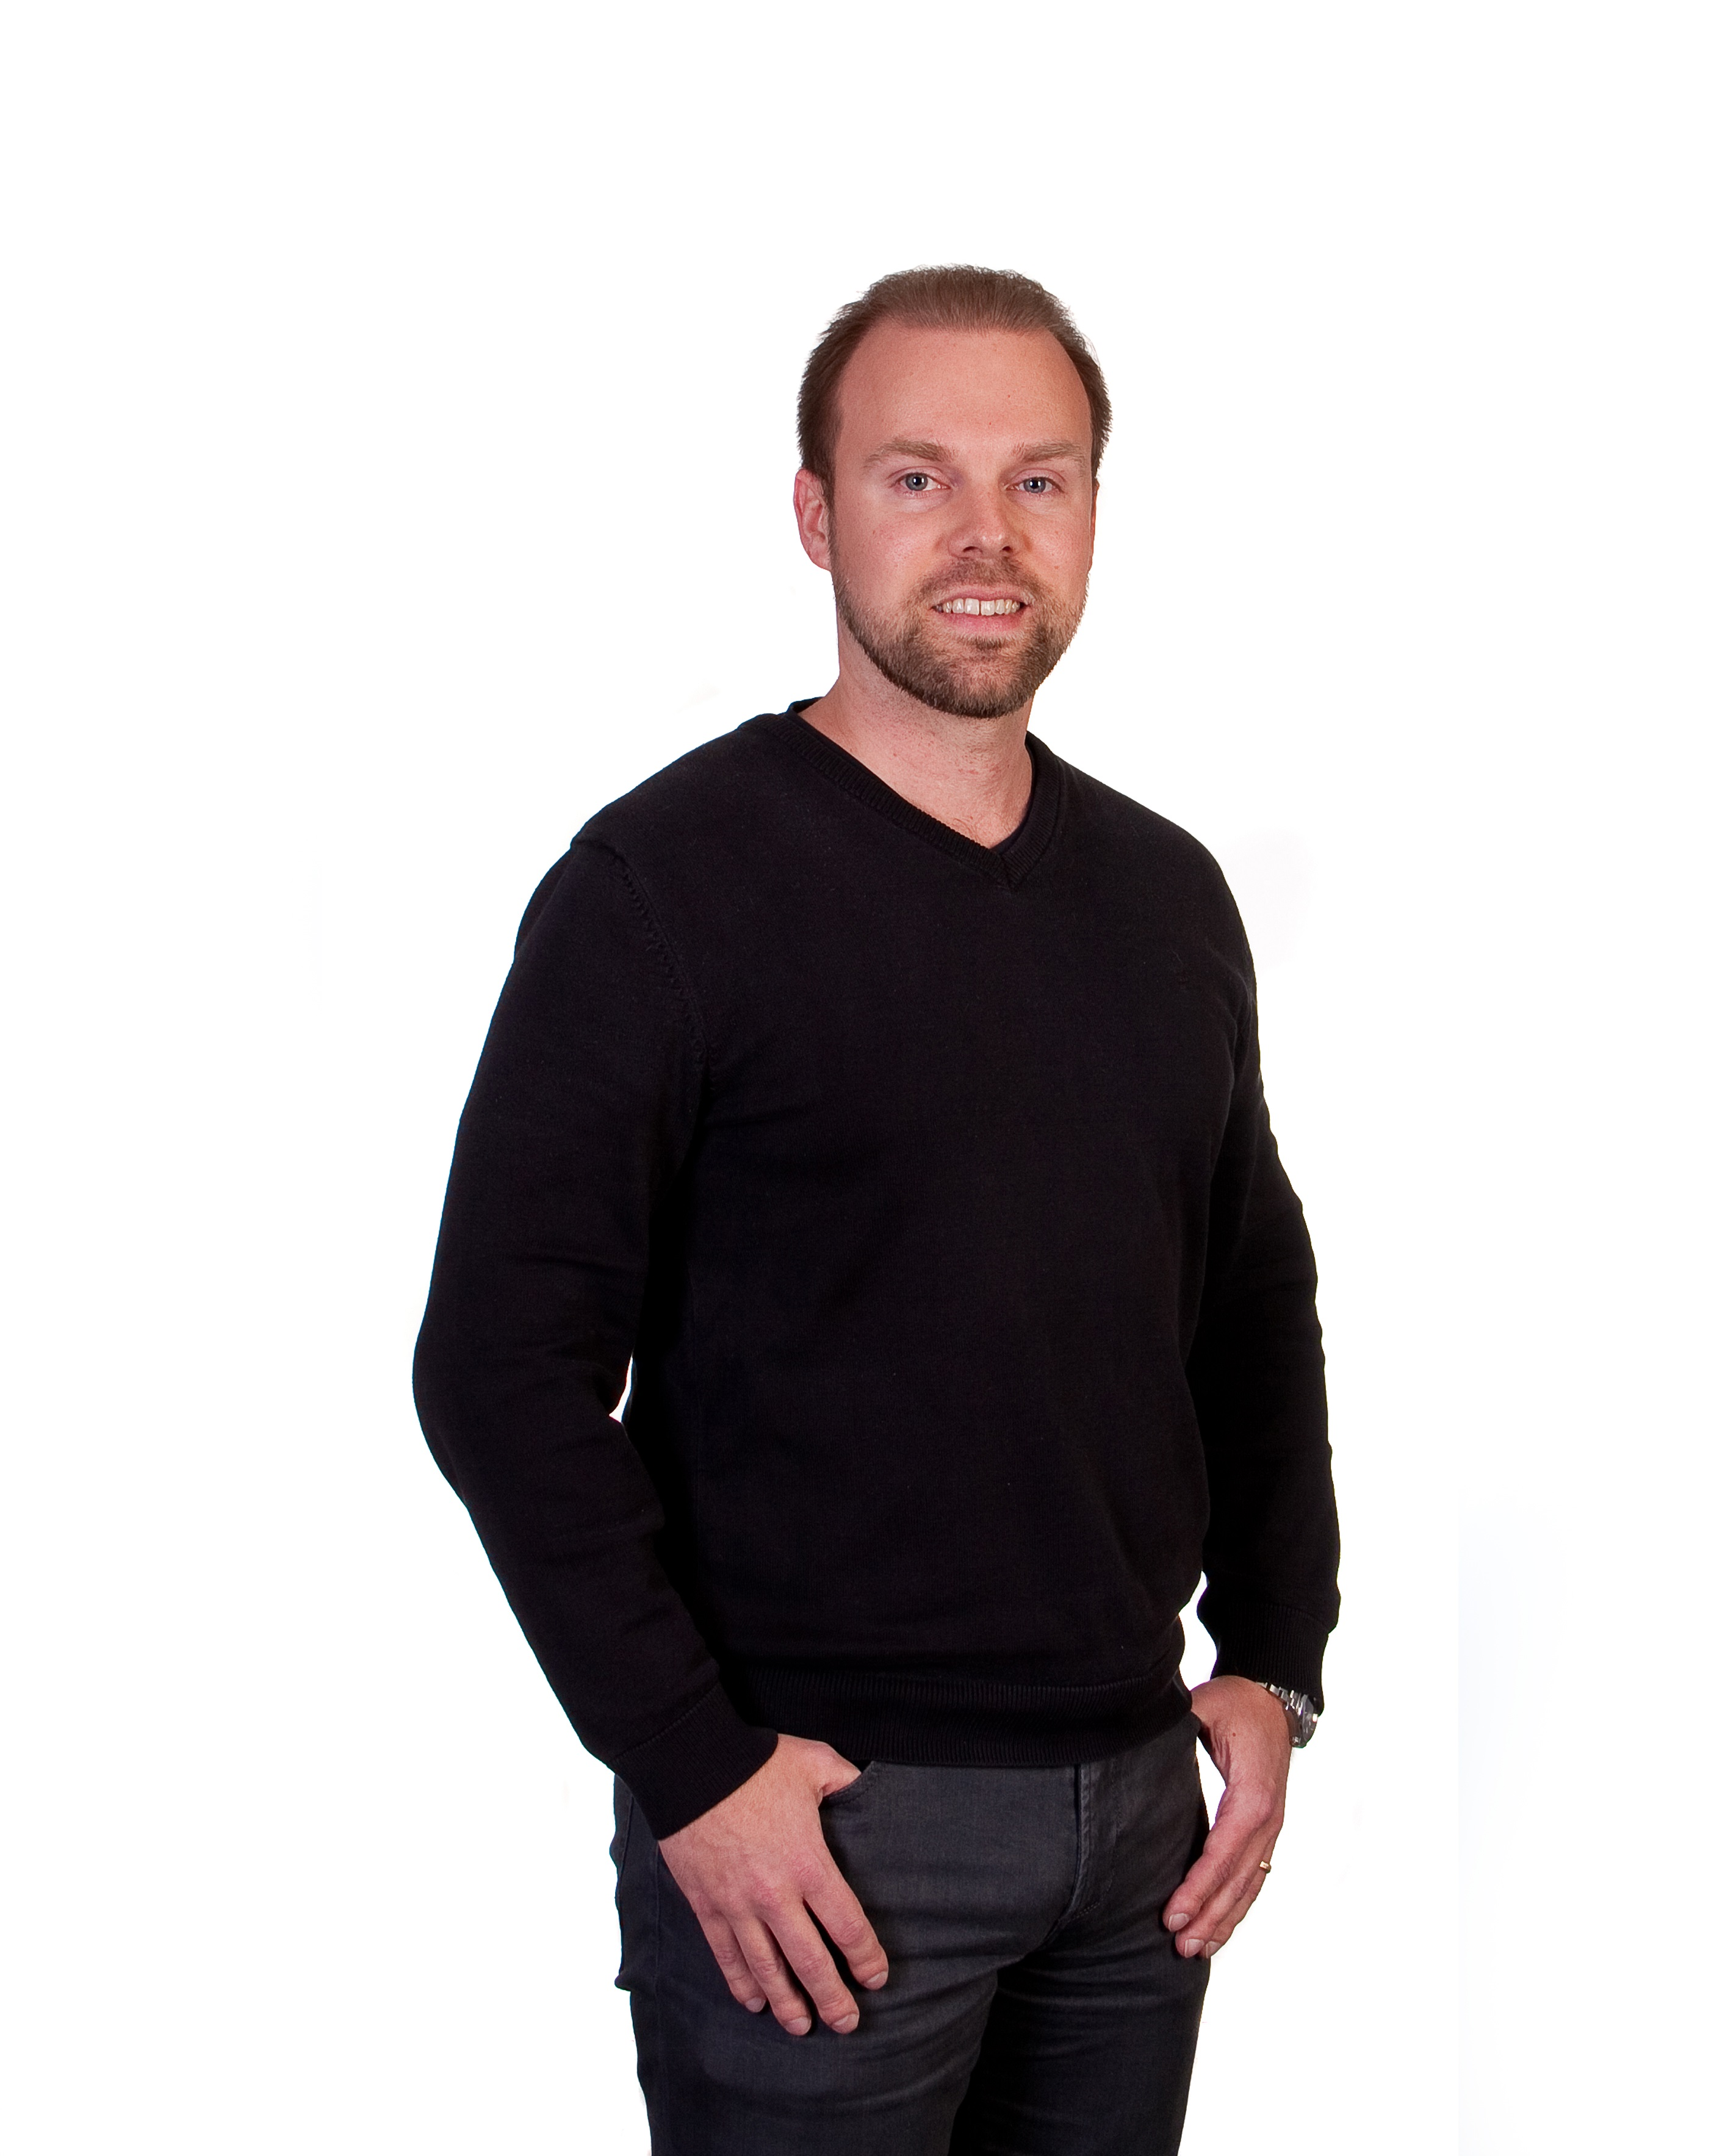 Picture of Tuomas Parvila